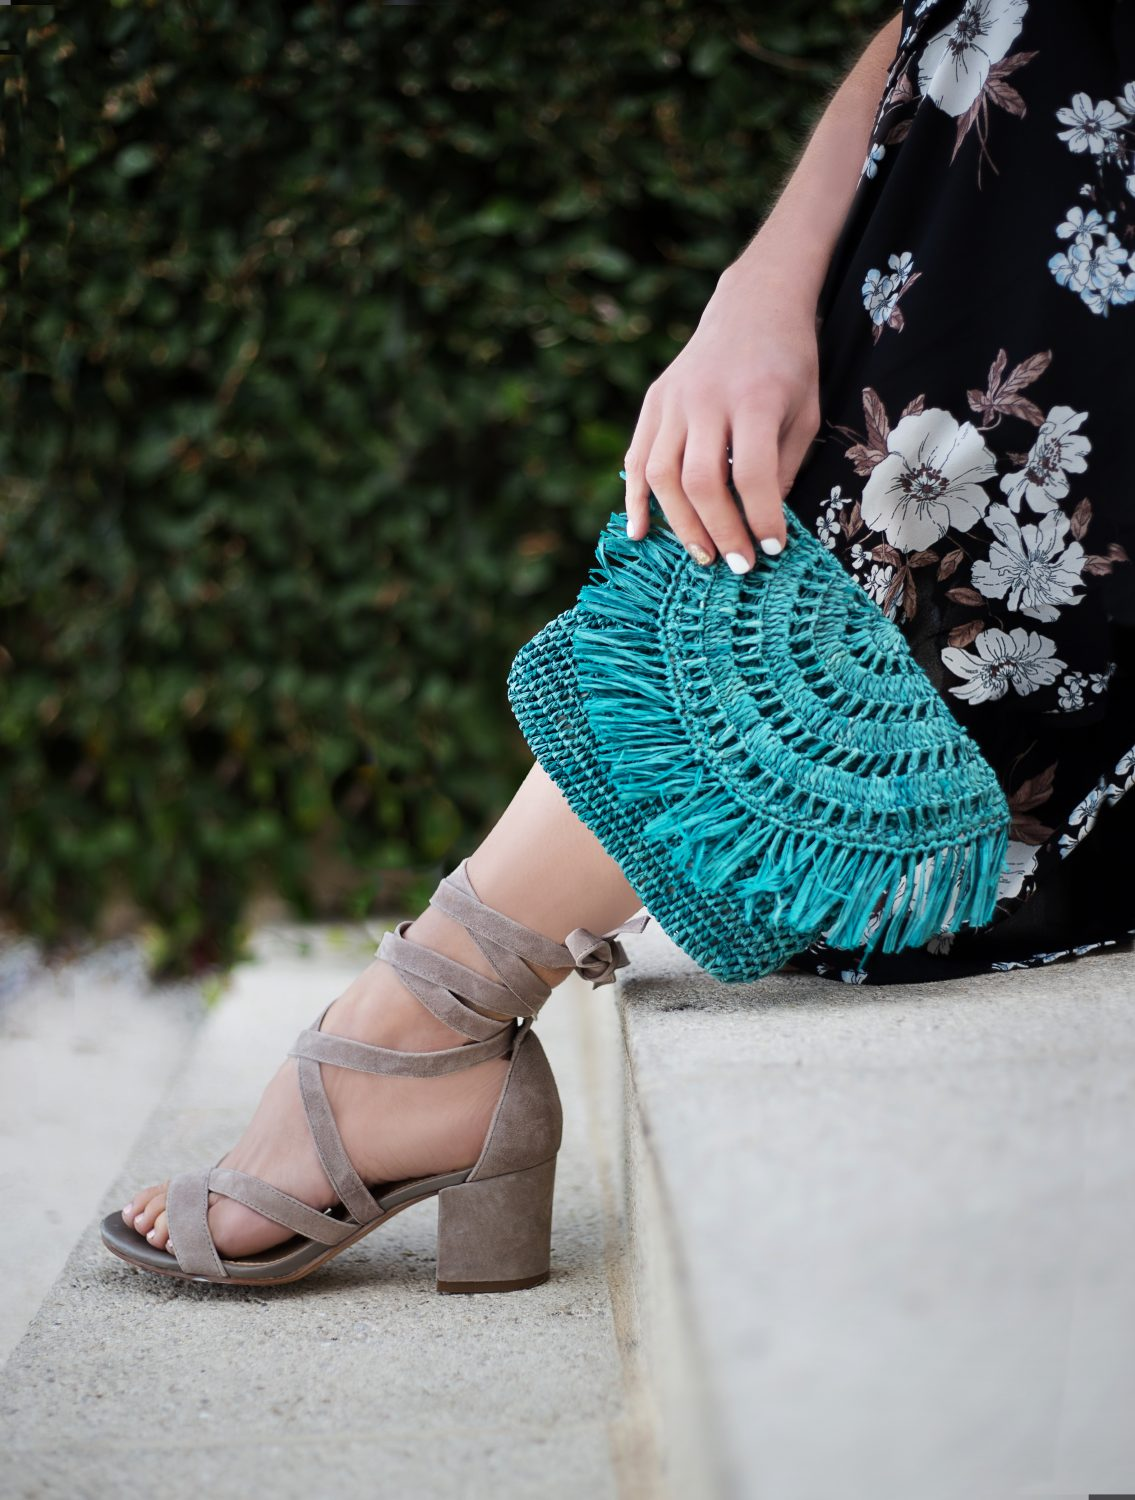 The Motherchic wearing sam edelman sandals and marysol clutch